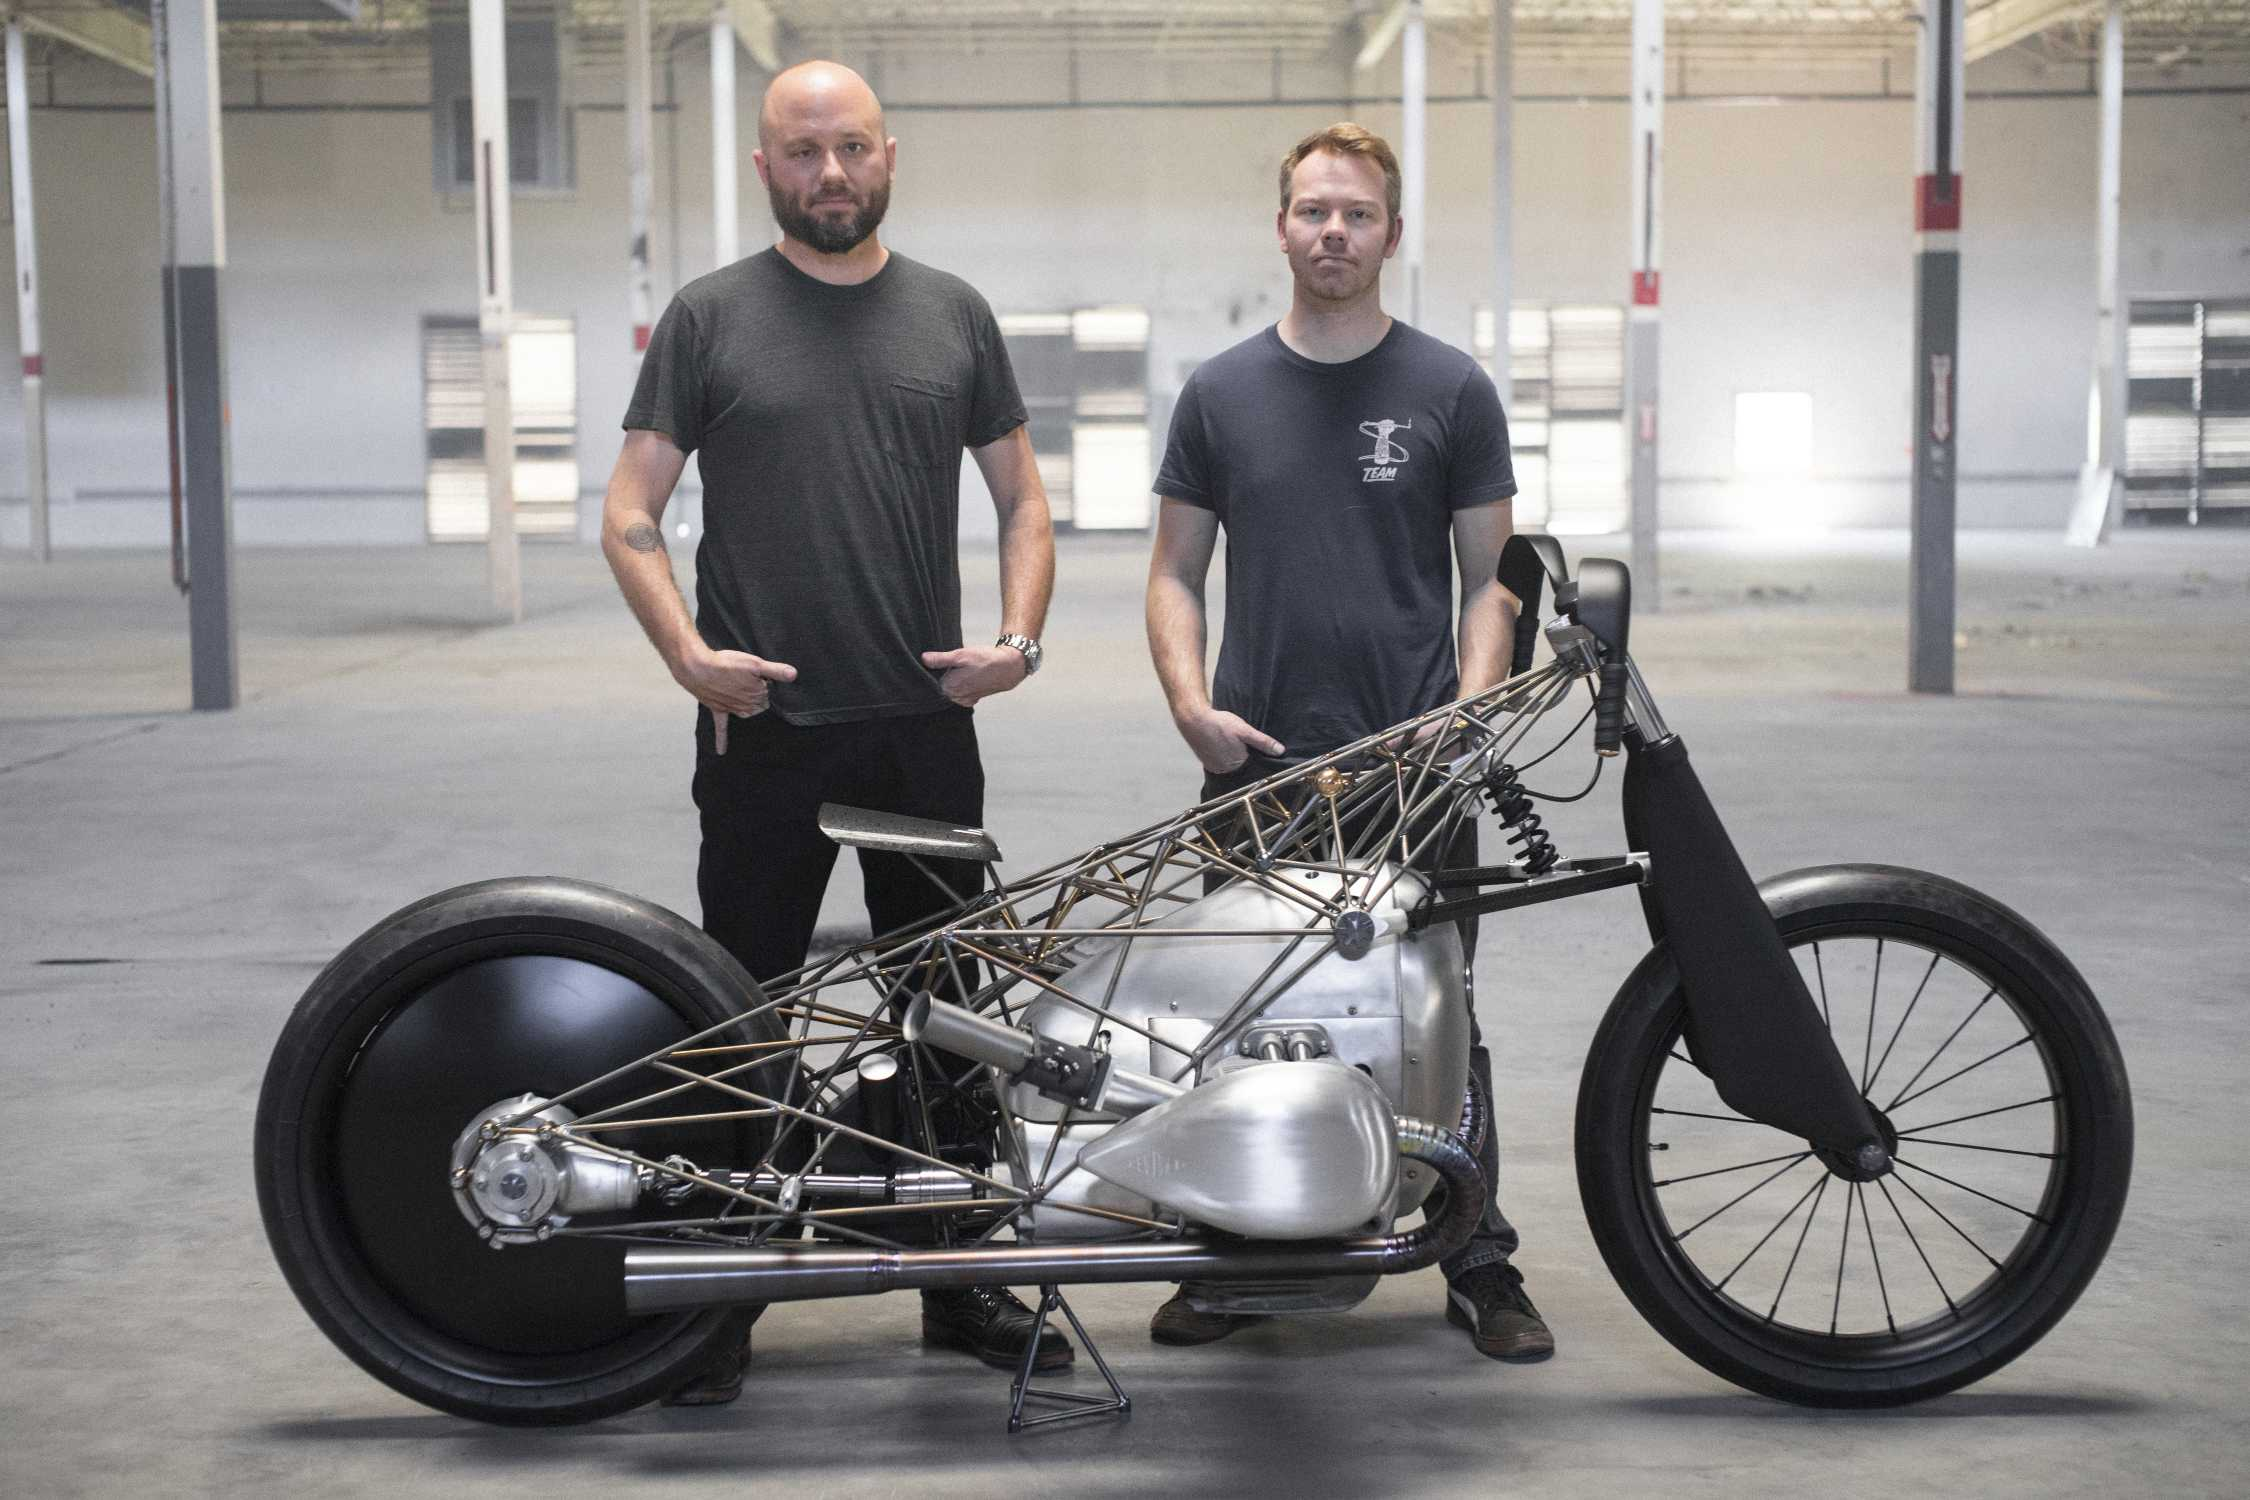 The Revival Birdcage is built around the BMW Motorrad boxer engine